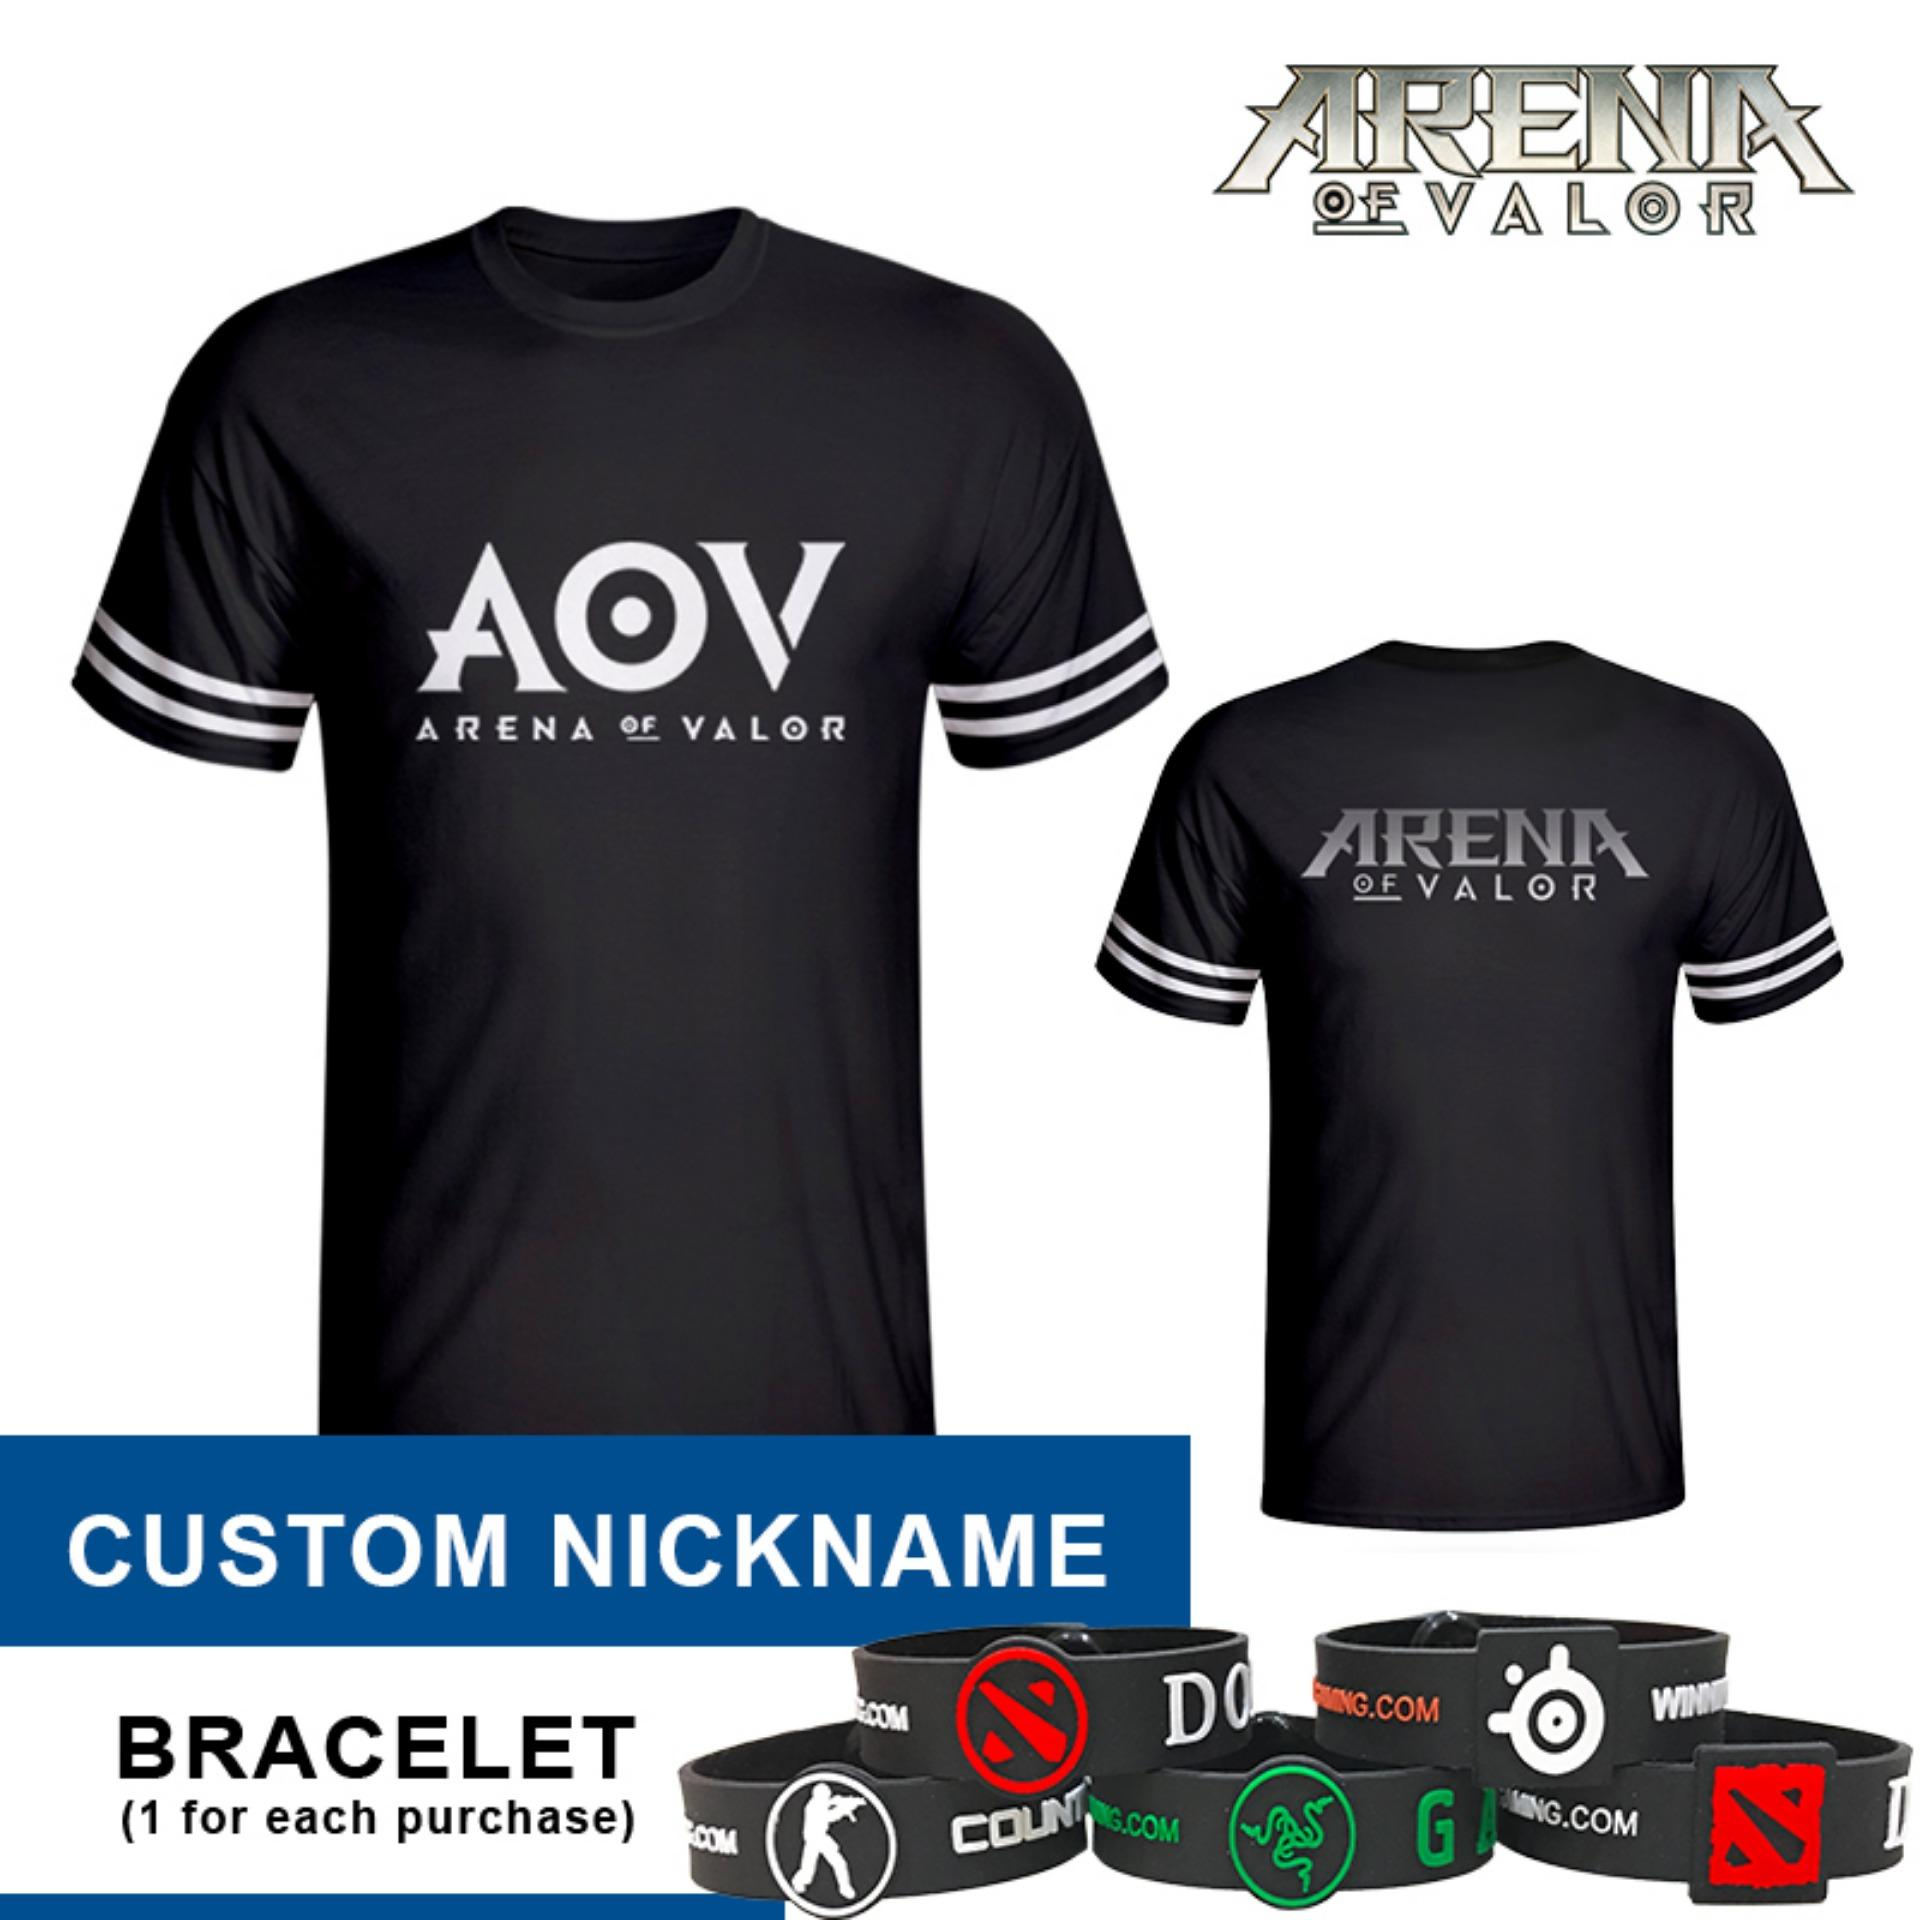 Tshirt Arena Of Valor Black Aov Custom Nickname